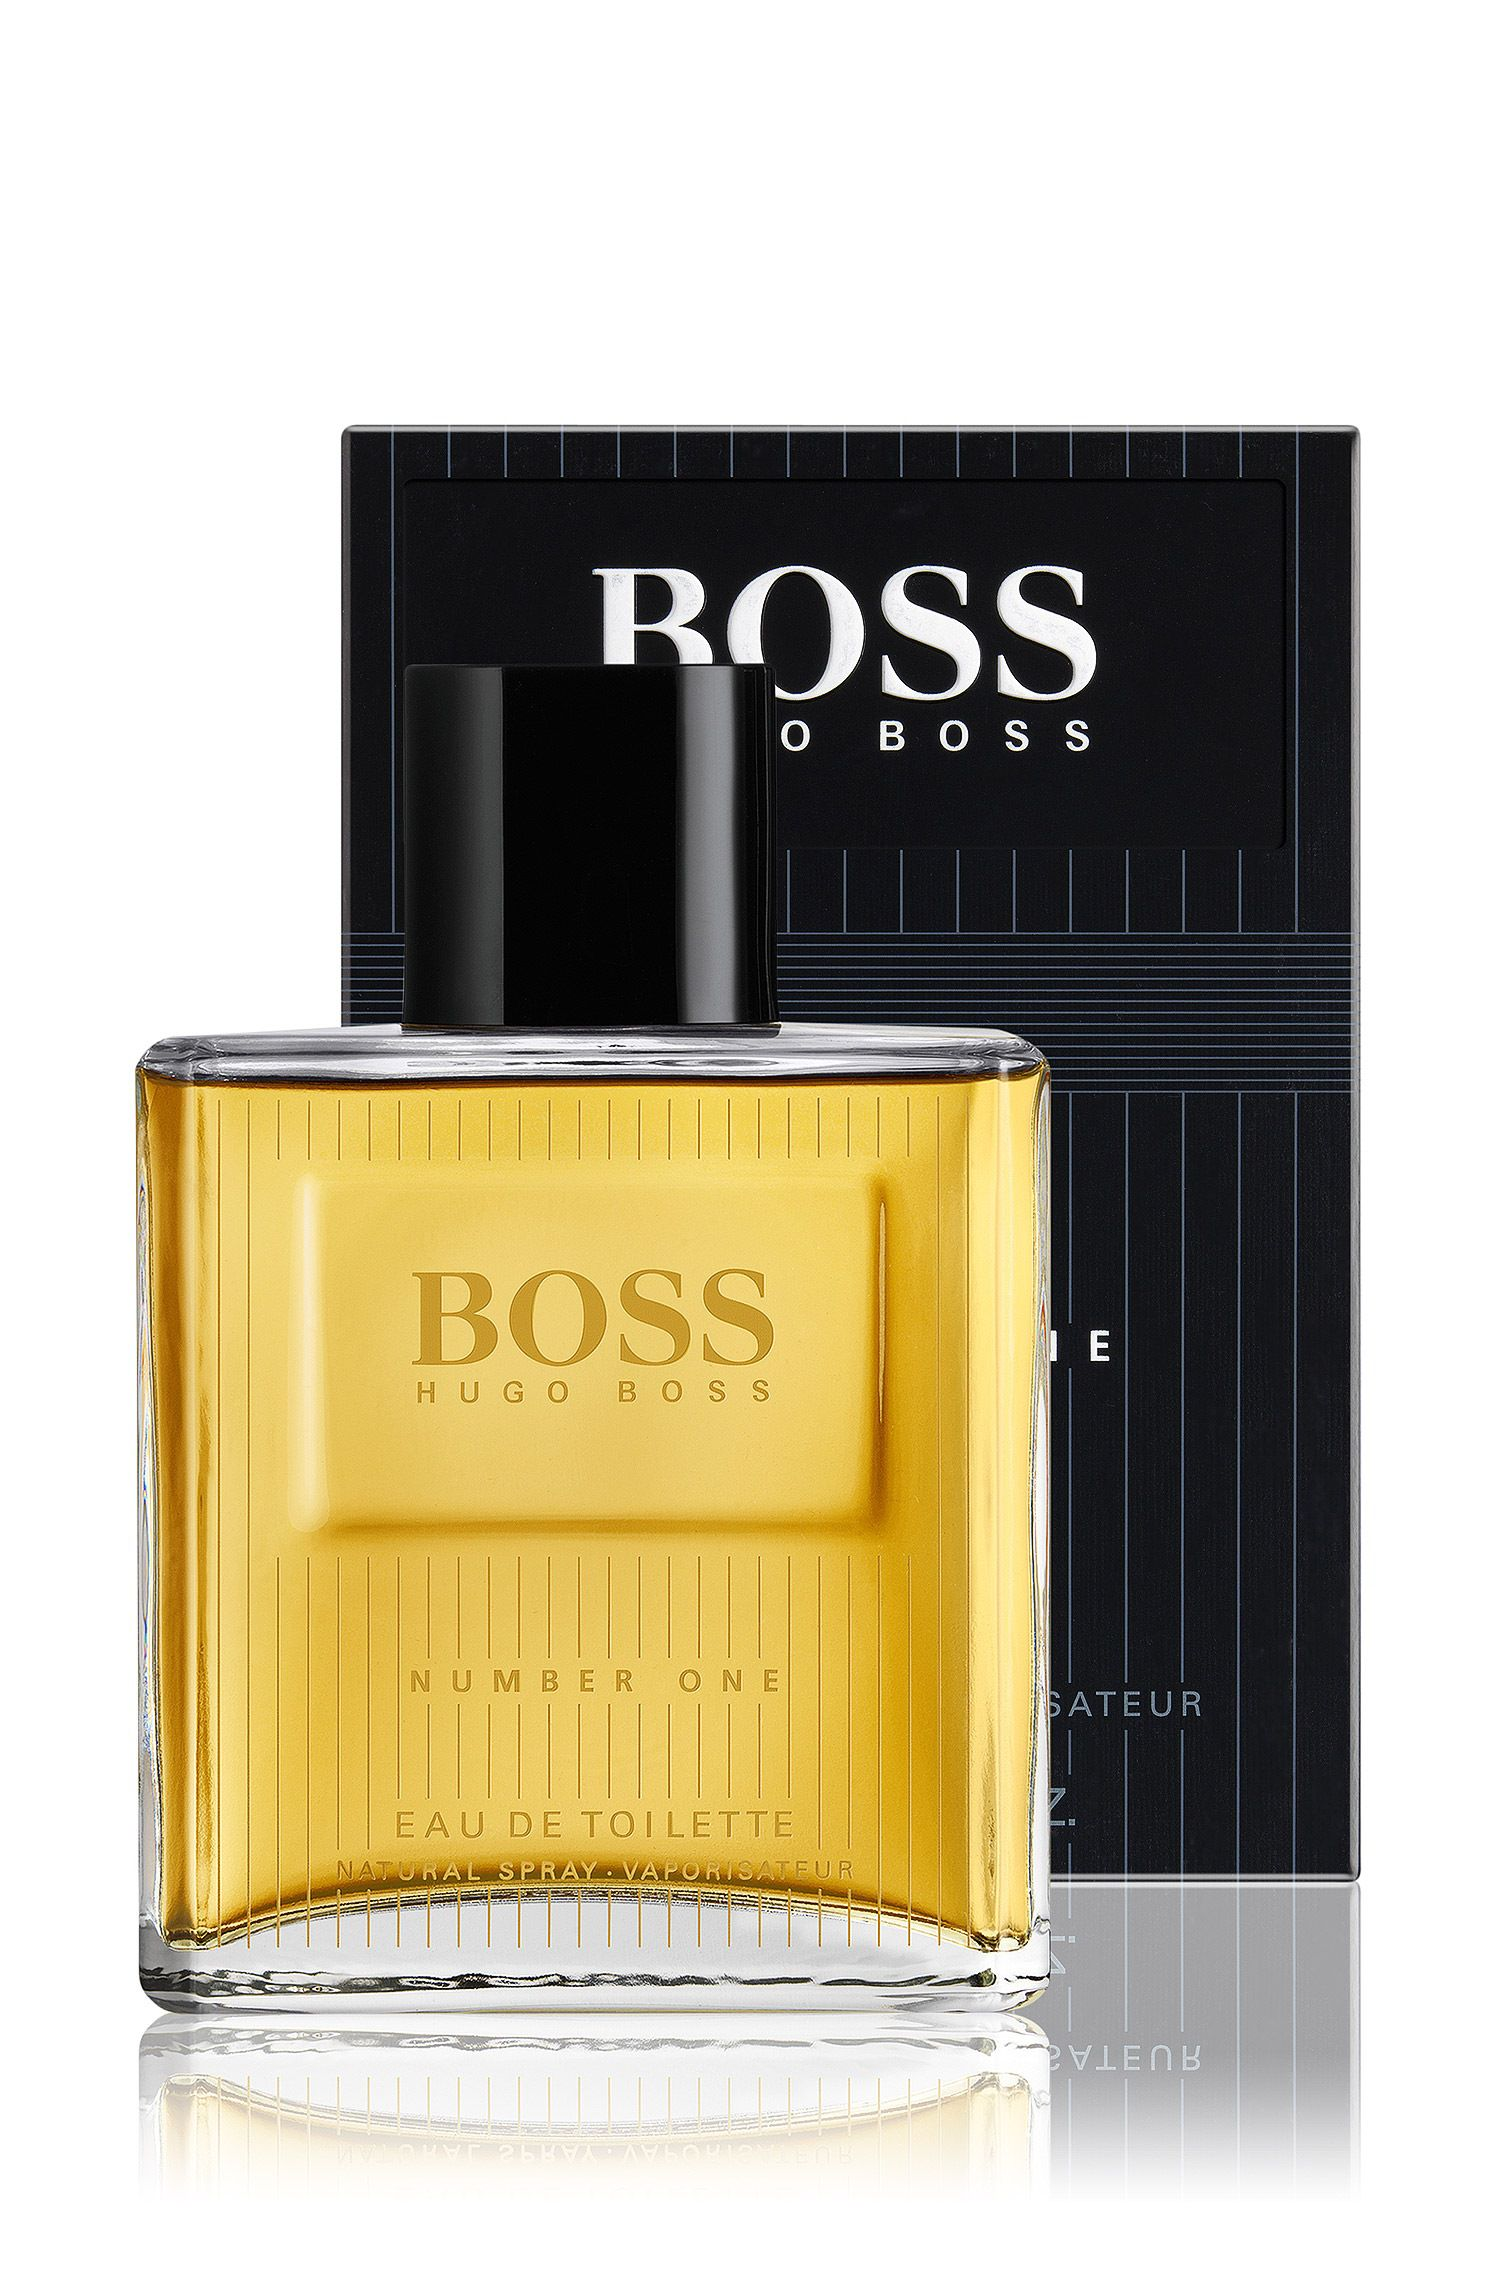 Eau de Toilette BOSS Number One, 125 ml, Assorted-Pre-Pack